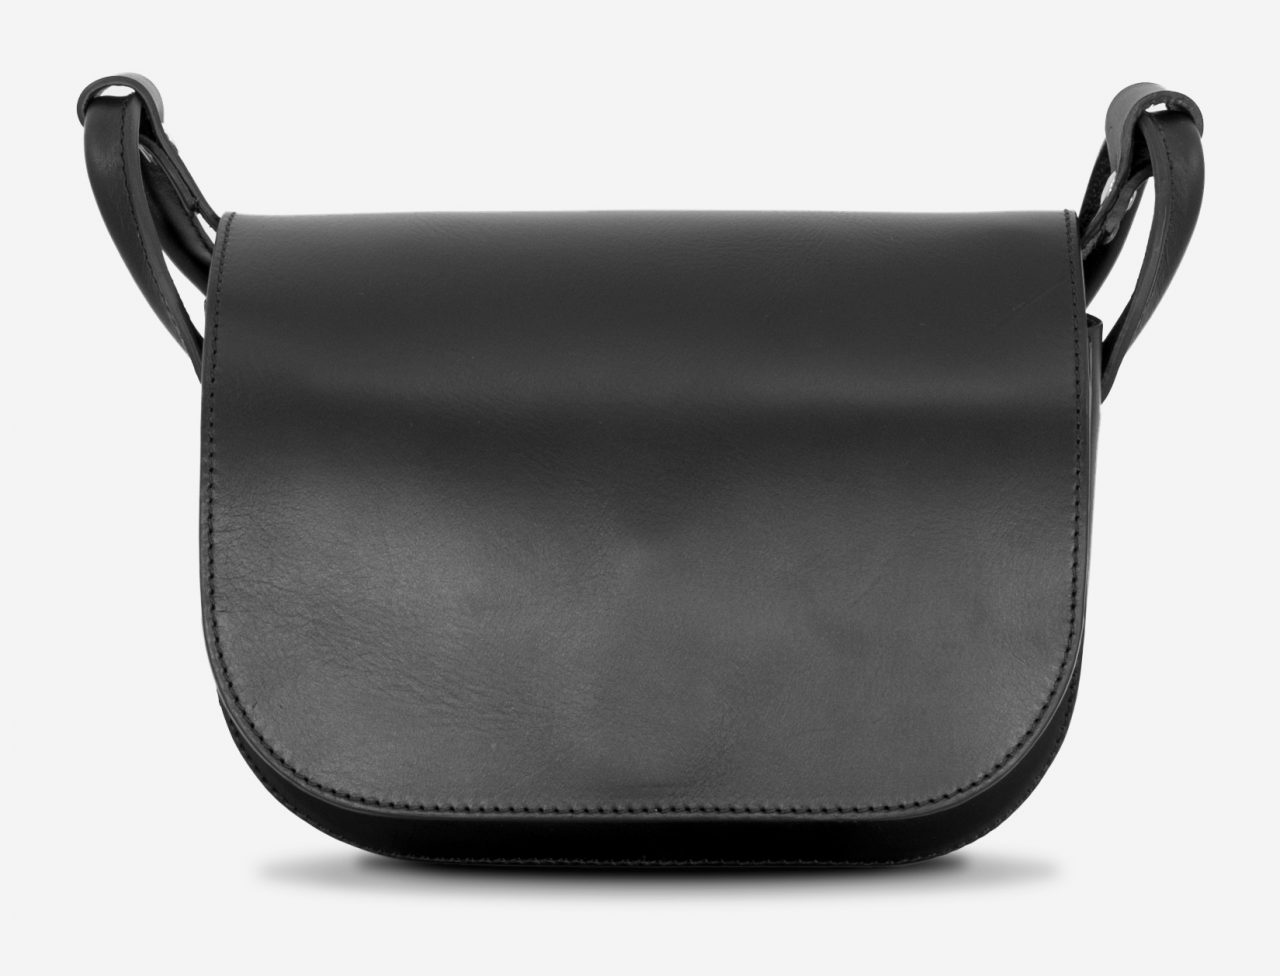 Front view of the 2 compartments black leather shoulder bag for women.